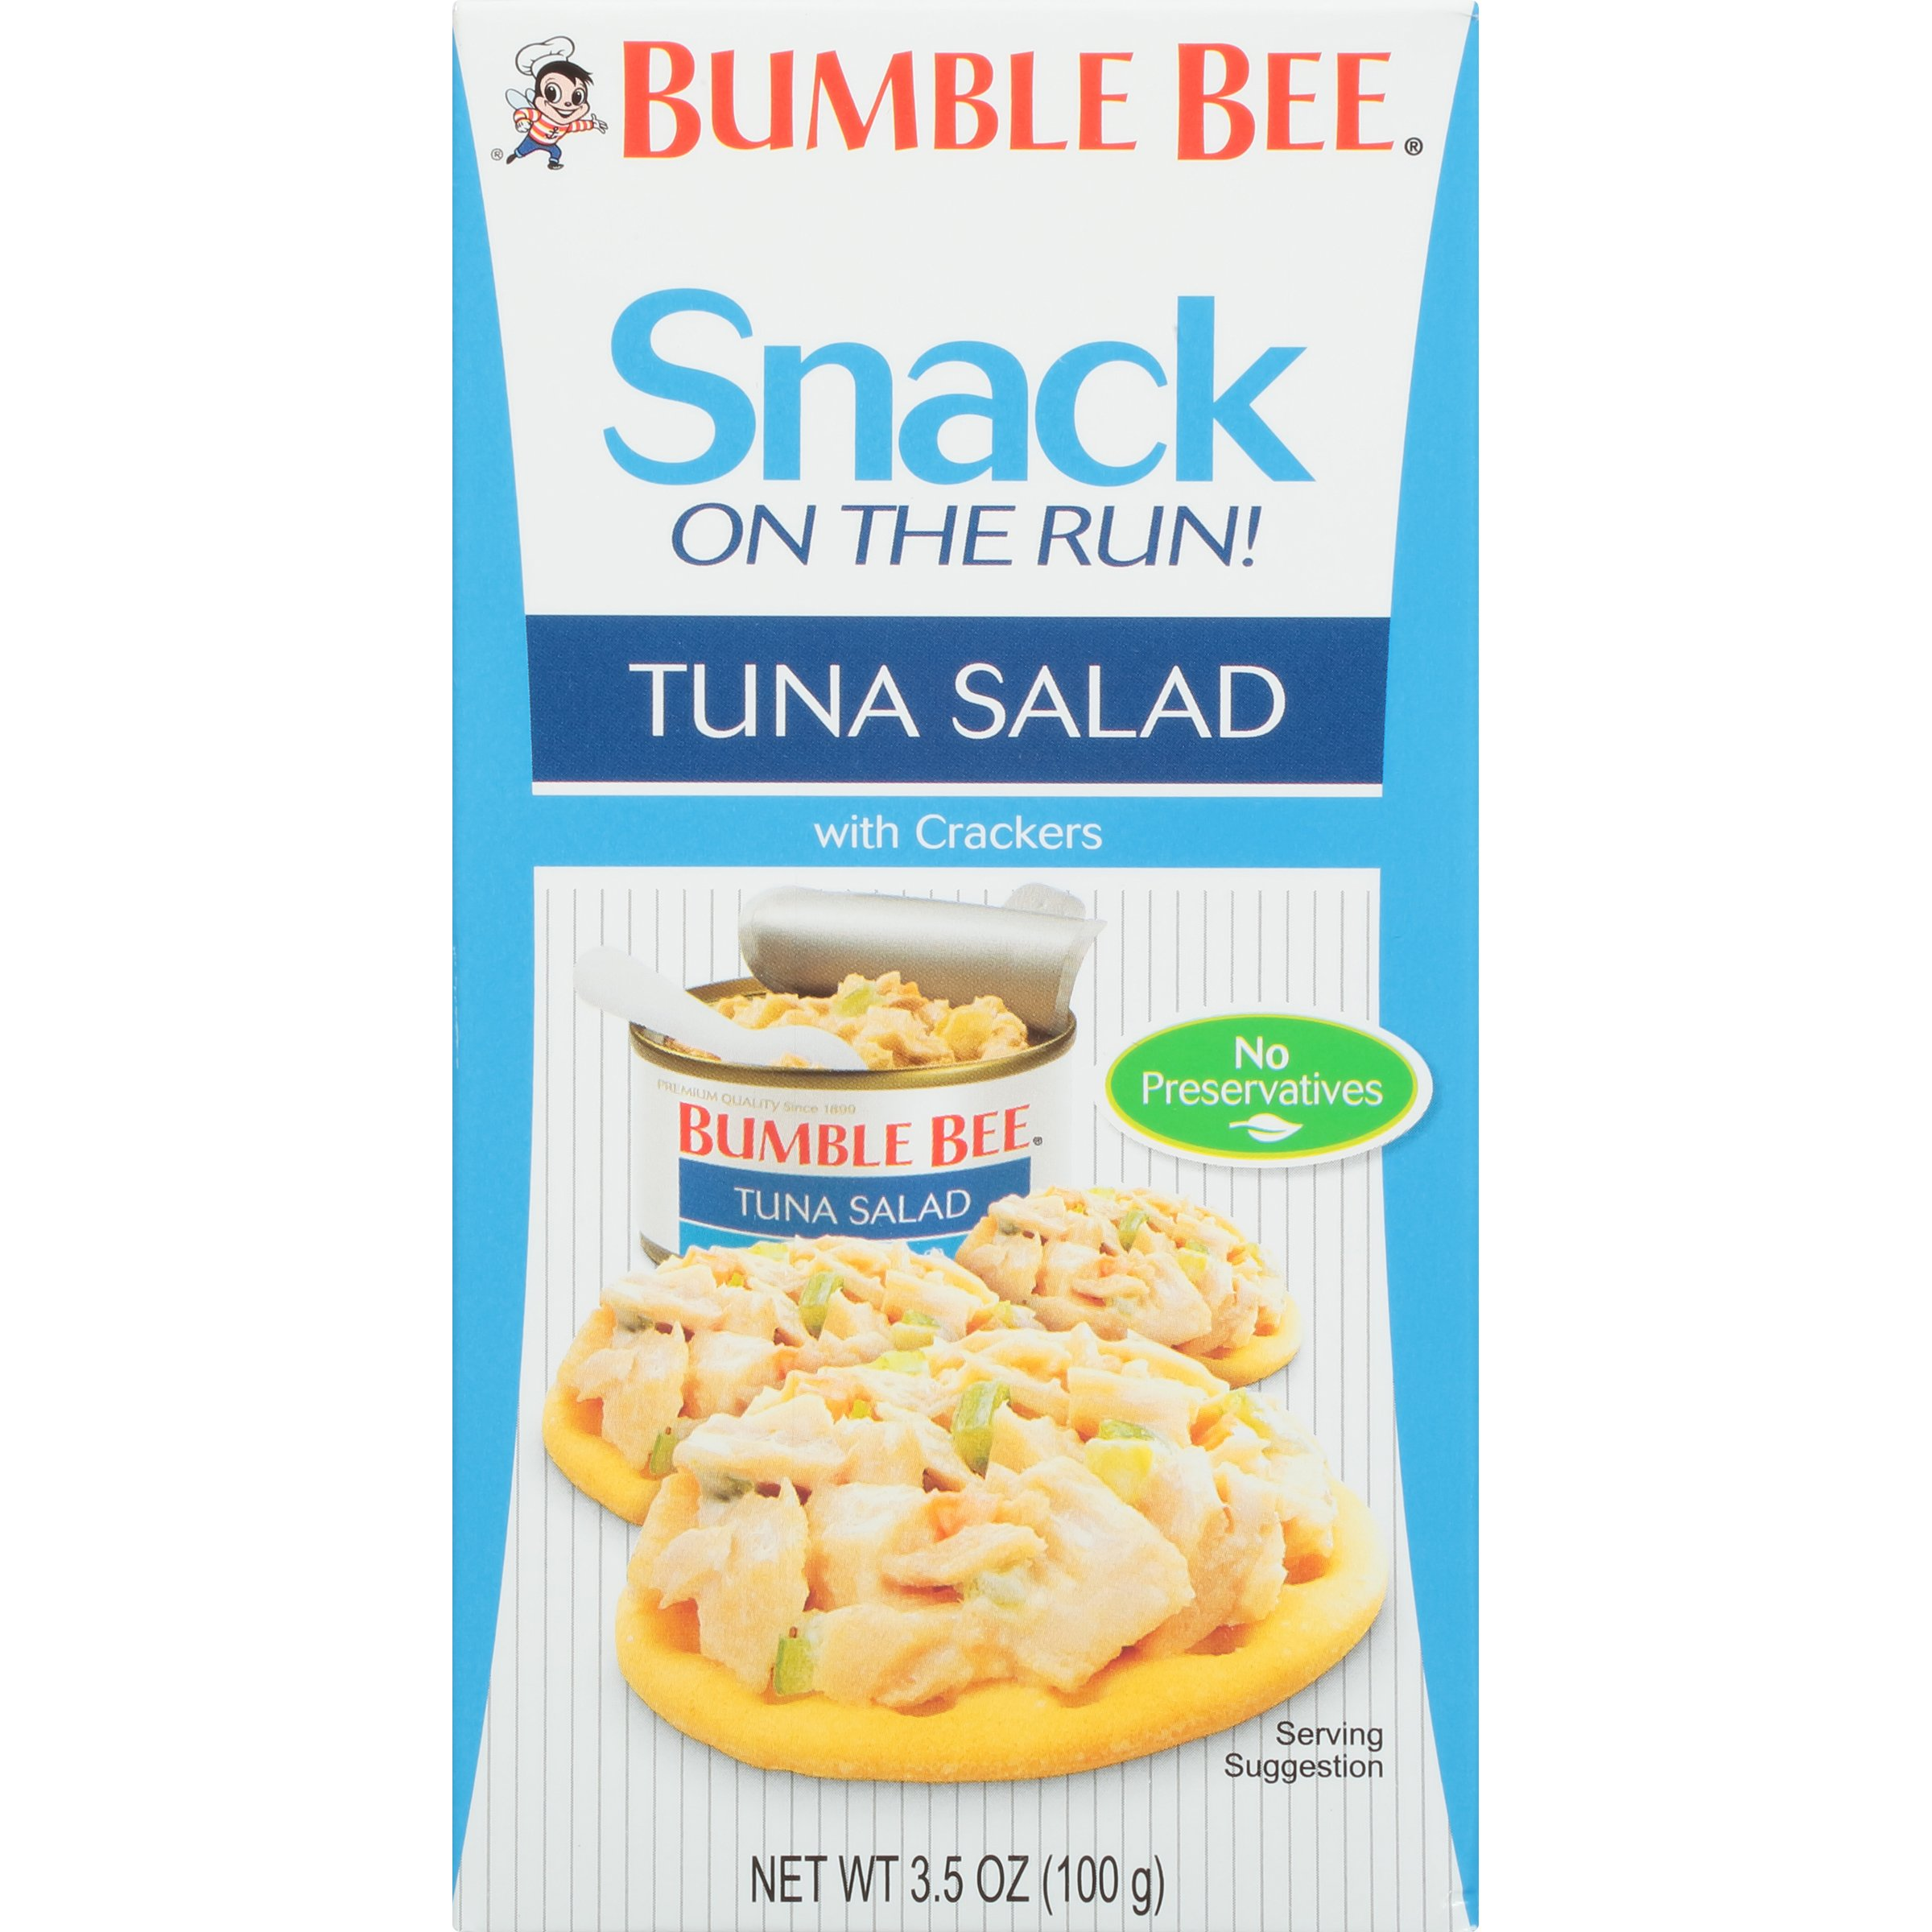 BUMBLE BEE Snack on the Run! Tuna Salad with Crackers Kit, Canned Tuna Fish, Good Source of Protein, 3.5oz